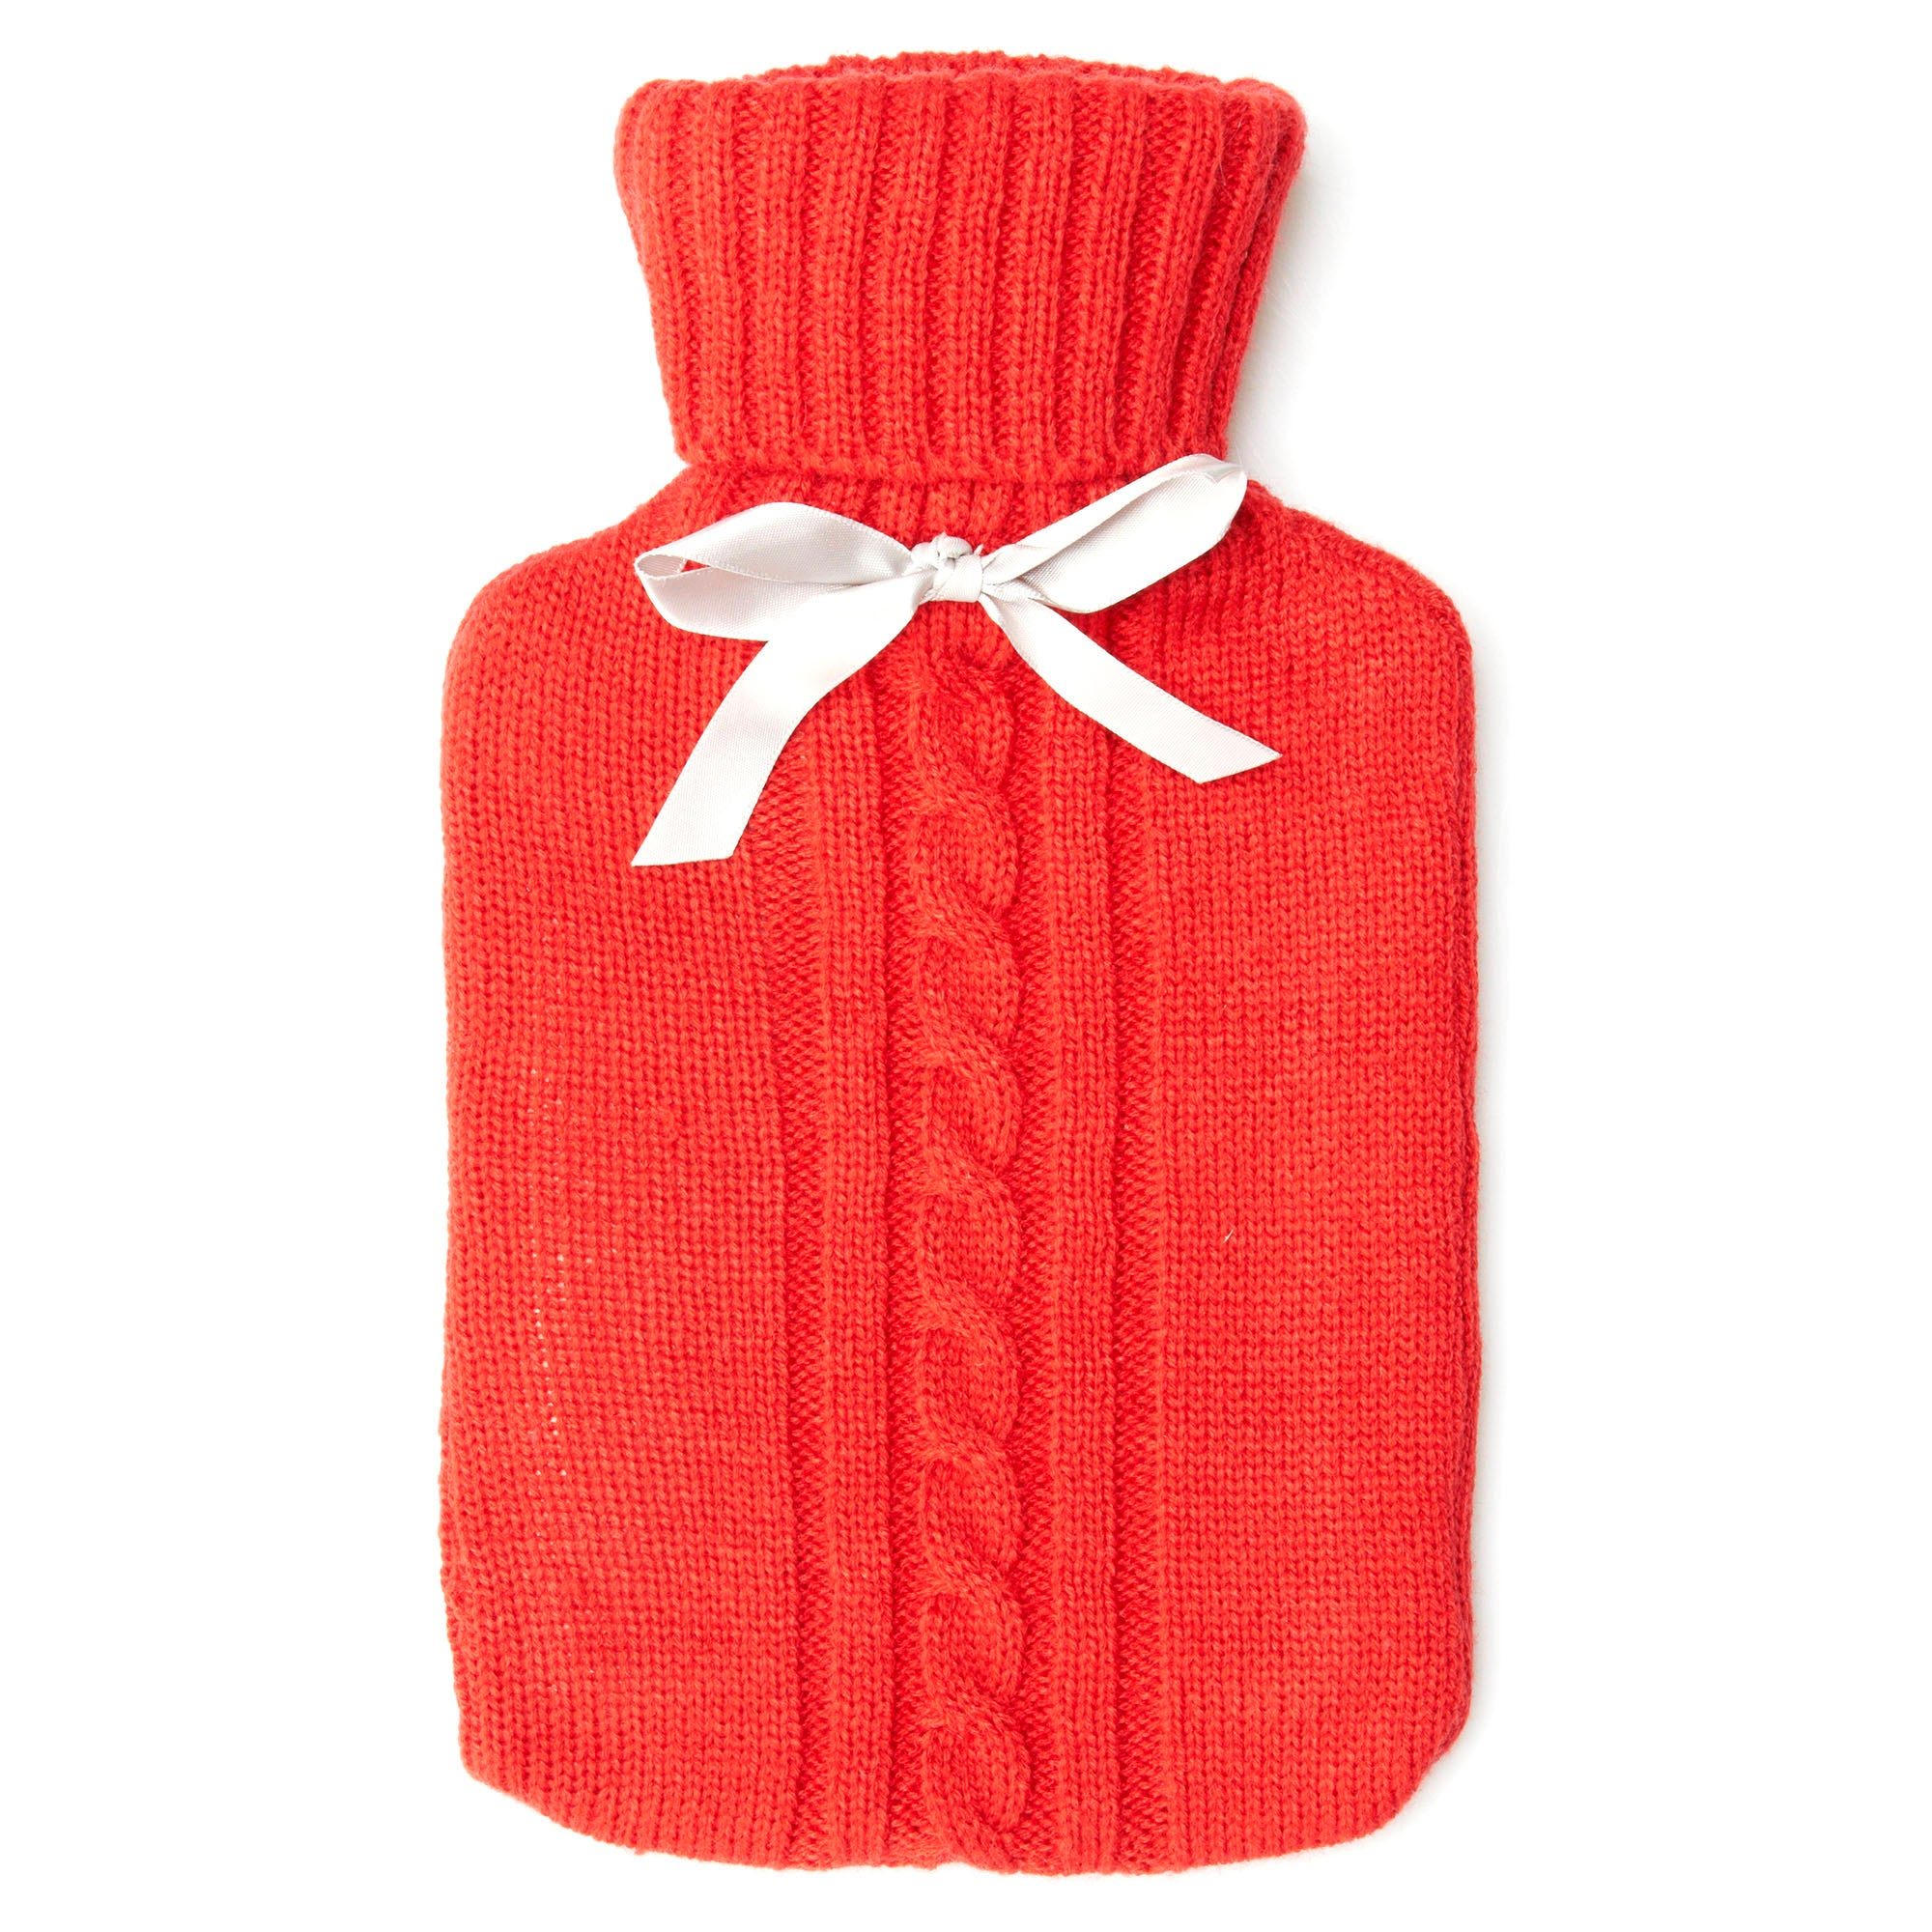 Hot Water Bottle With Ribbon